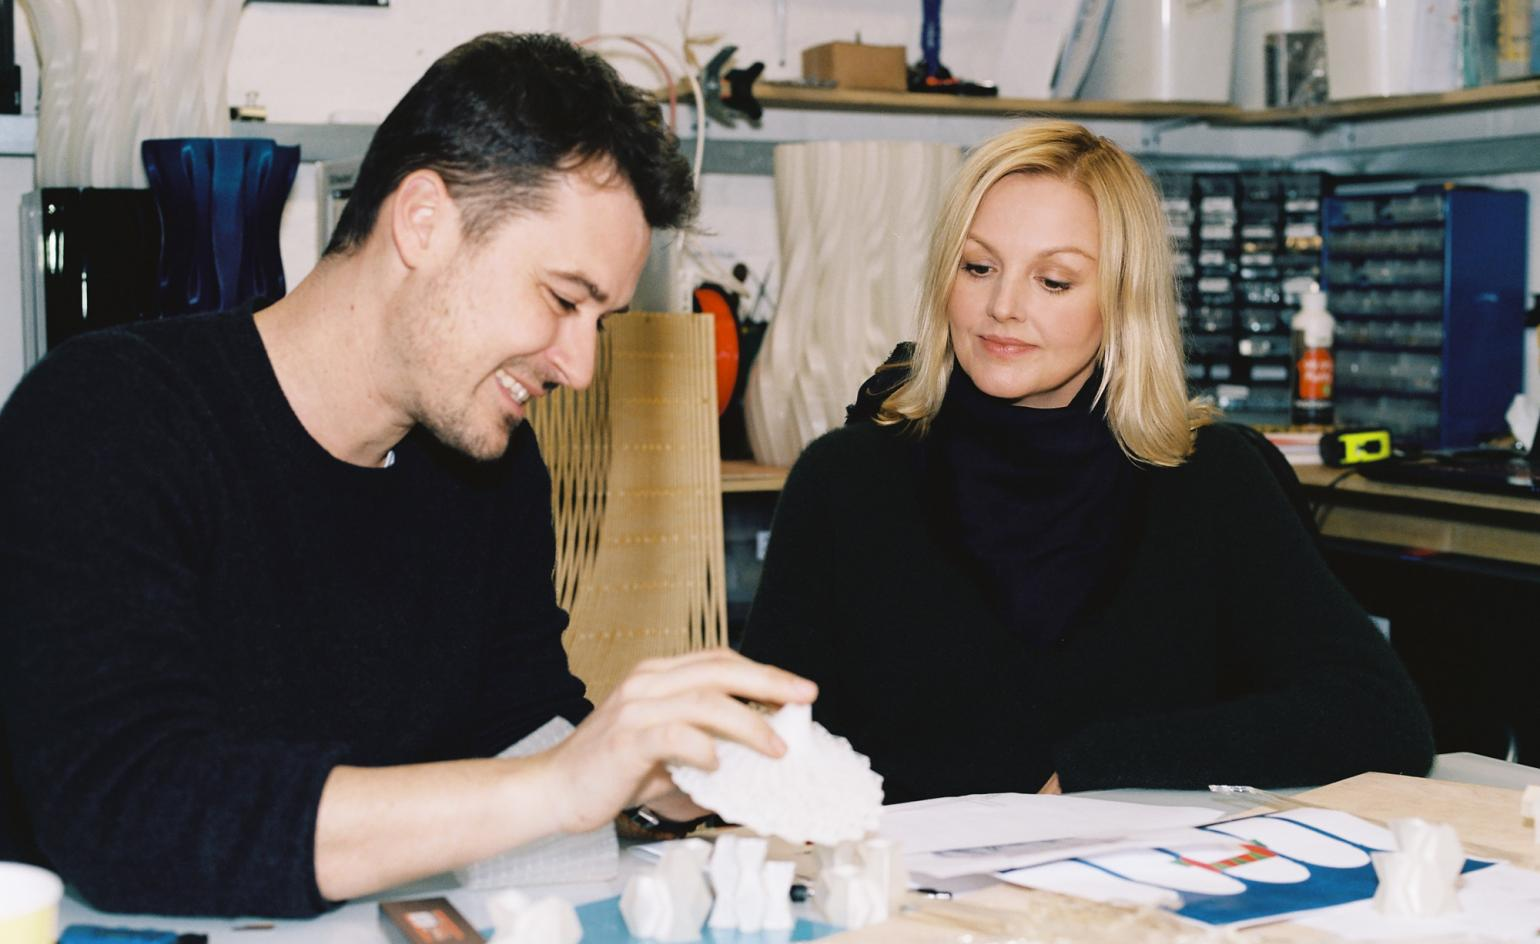 a man in a black shirt with black hair sitting at a table with a woman with blonde hair in a black shirt working in a studio